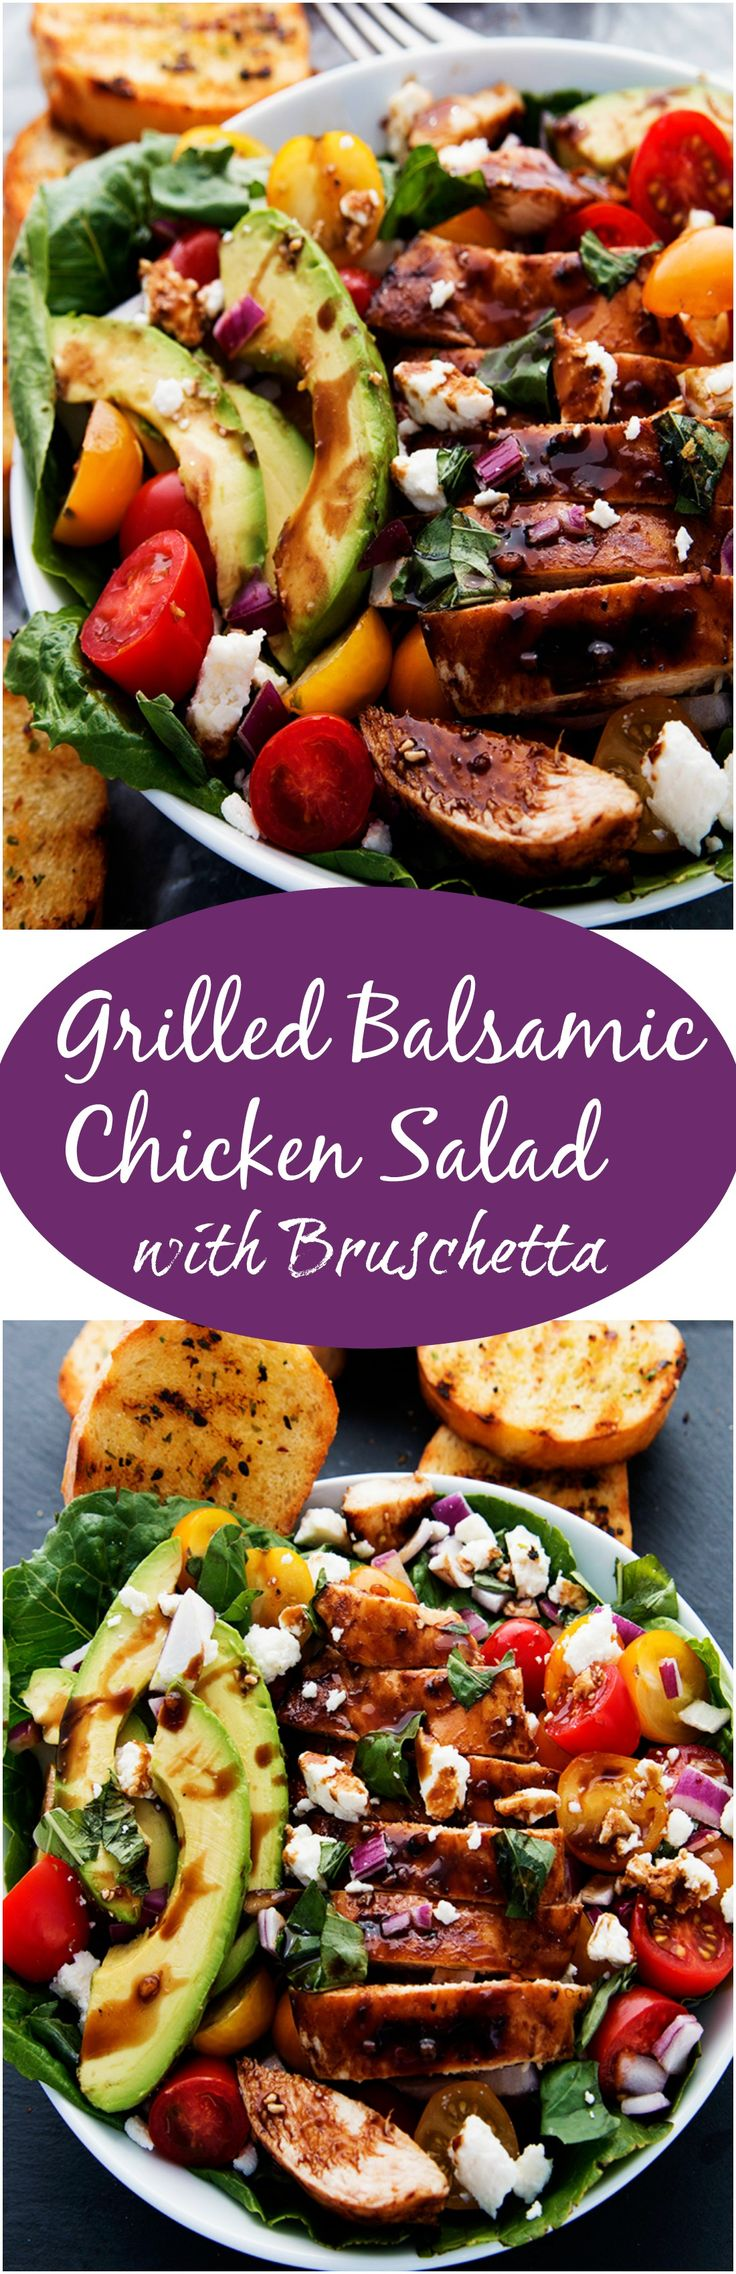 Grilled Balsamic Chicken Salad with Bruschetta is heart healthy and will turn a traditional salad into an extraordinary salad.